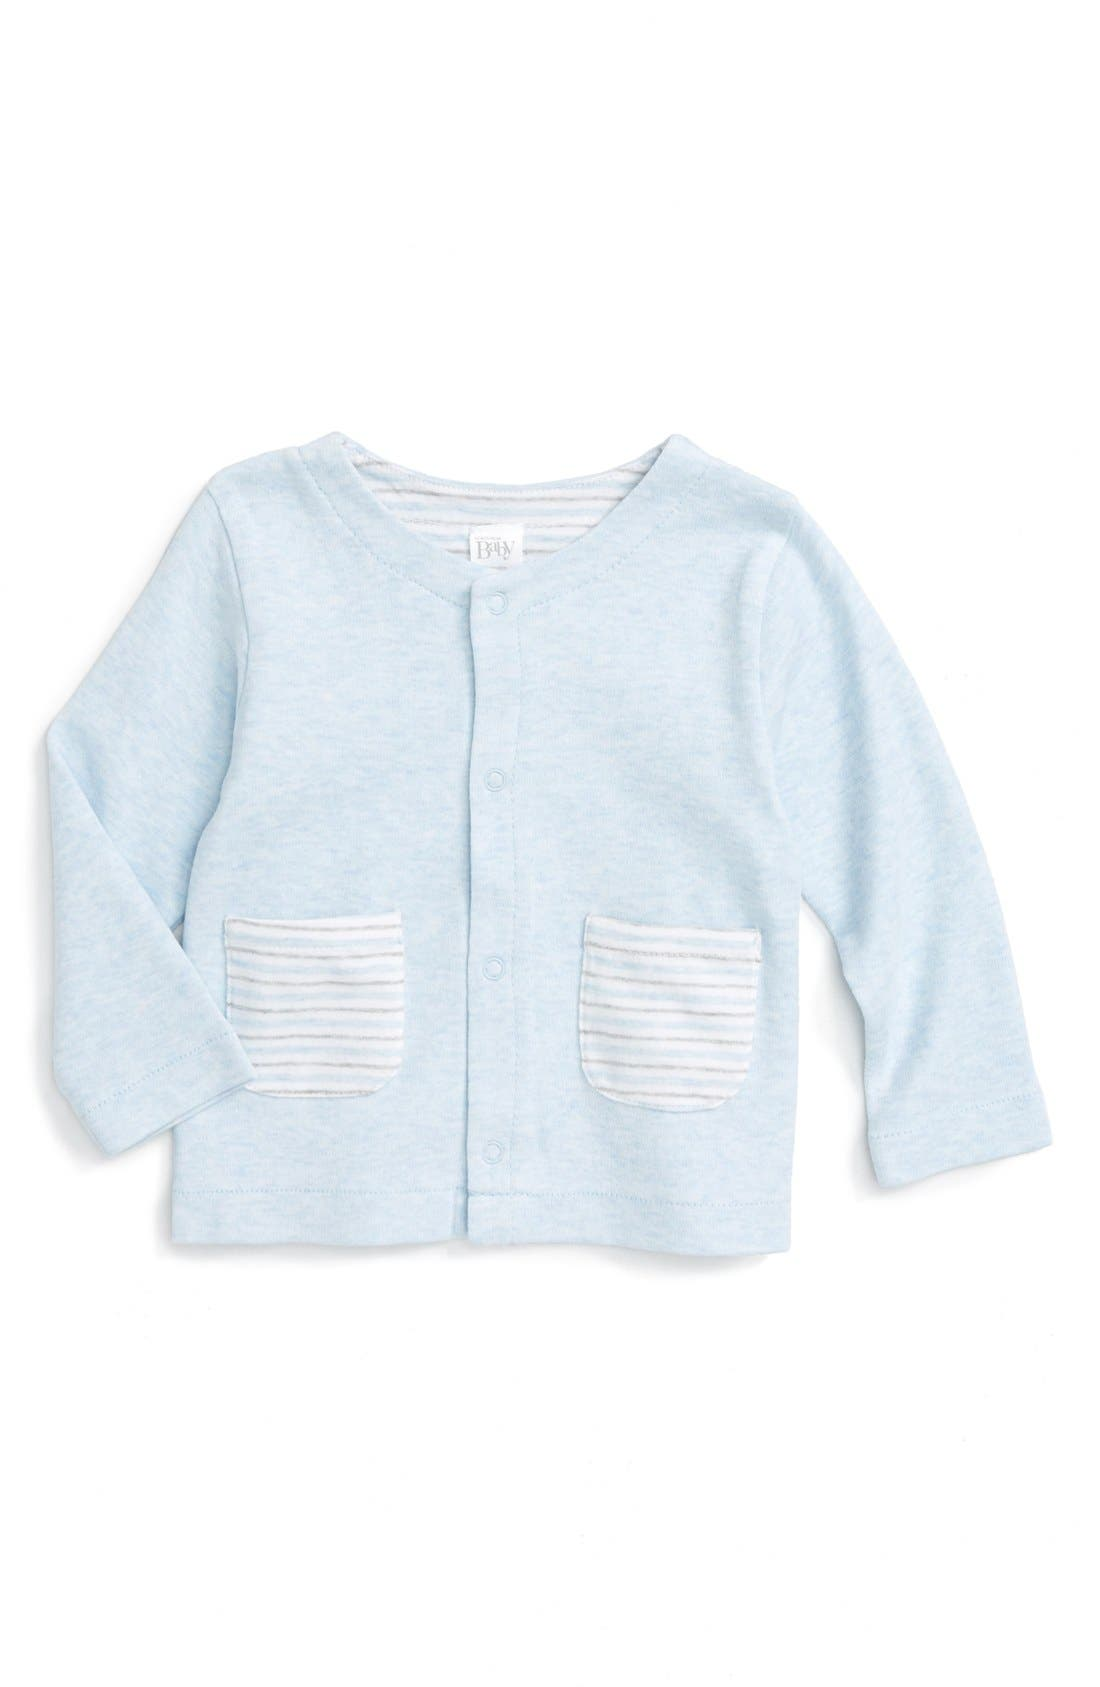 Nordstrom Baby Patch Pocket Sweater (Baby)